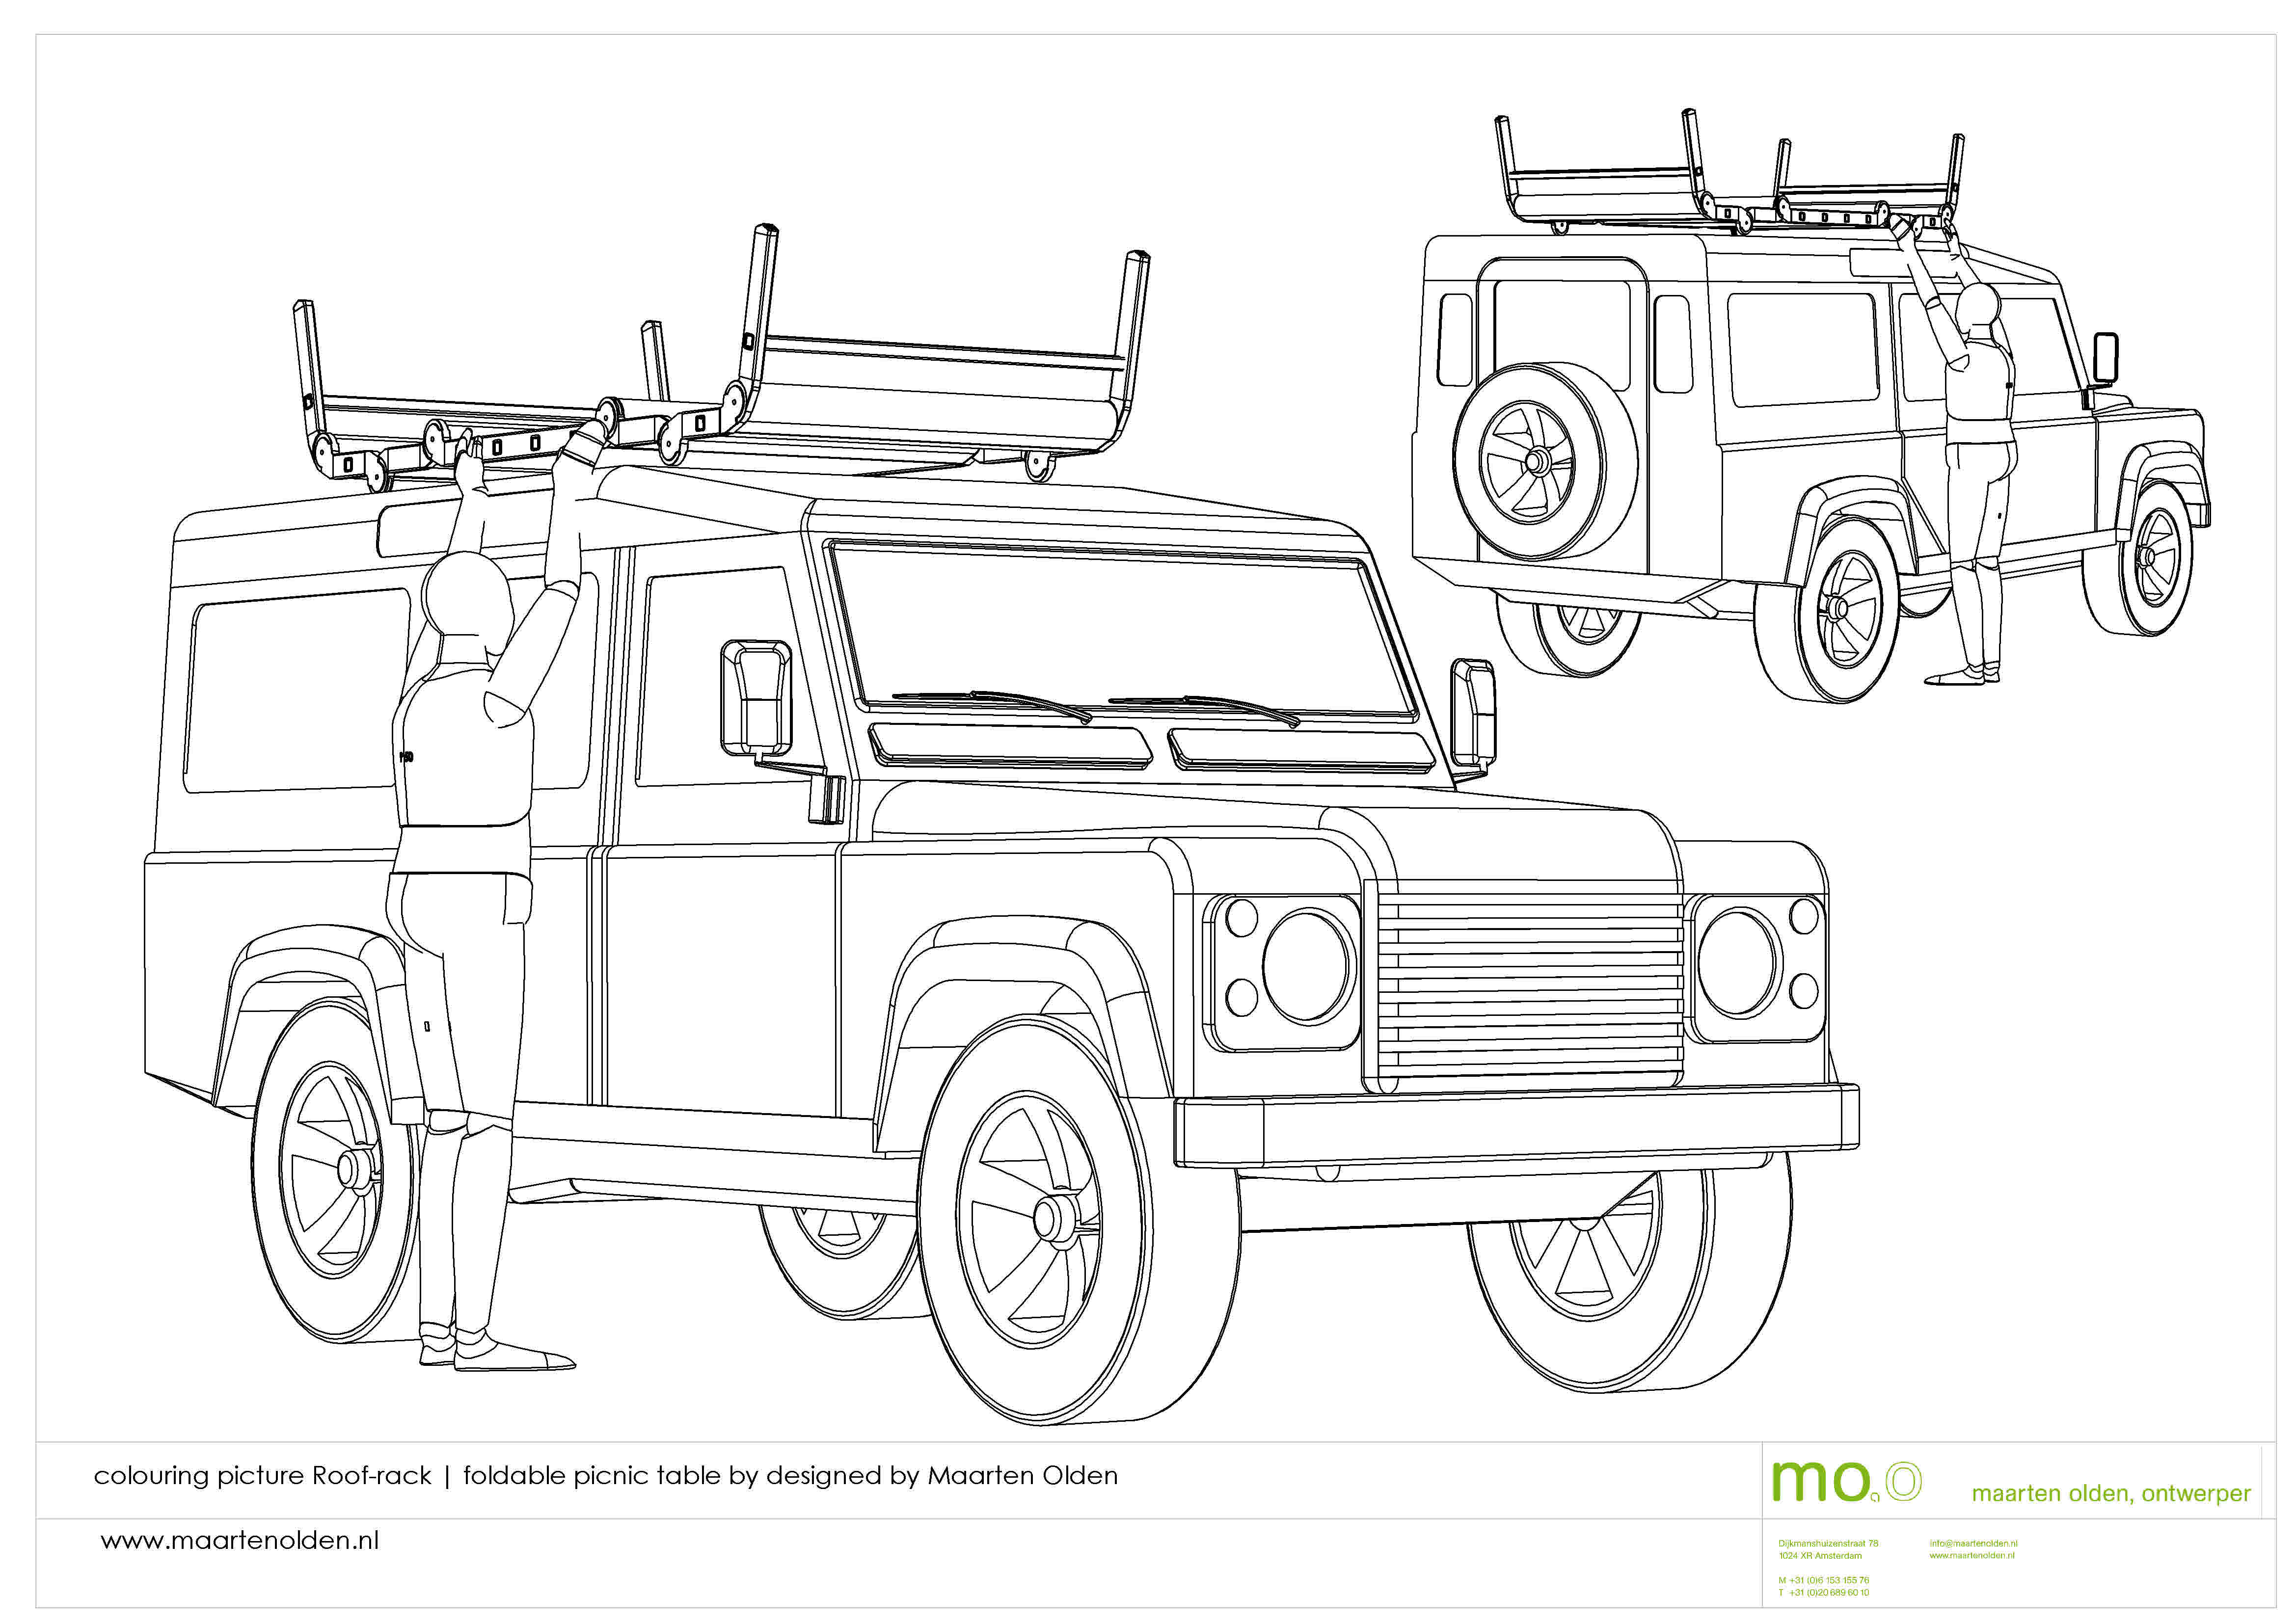 colouring picture landrover with roof-rack by maarten olden